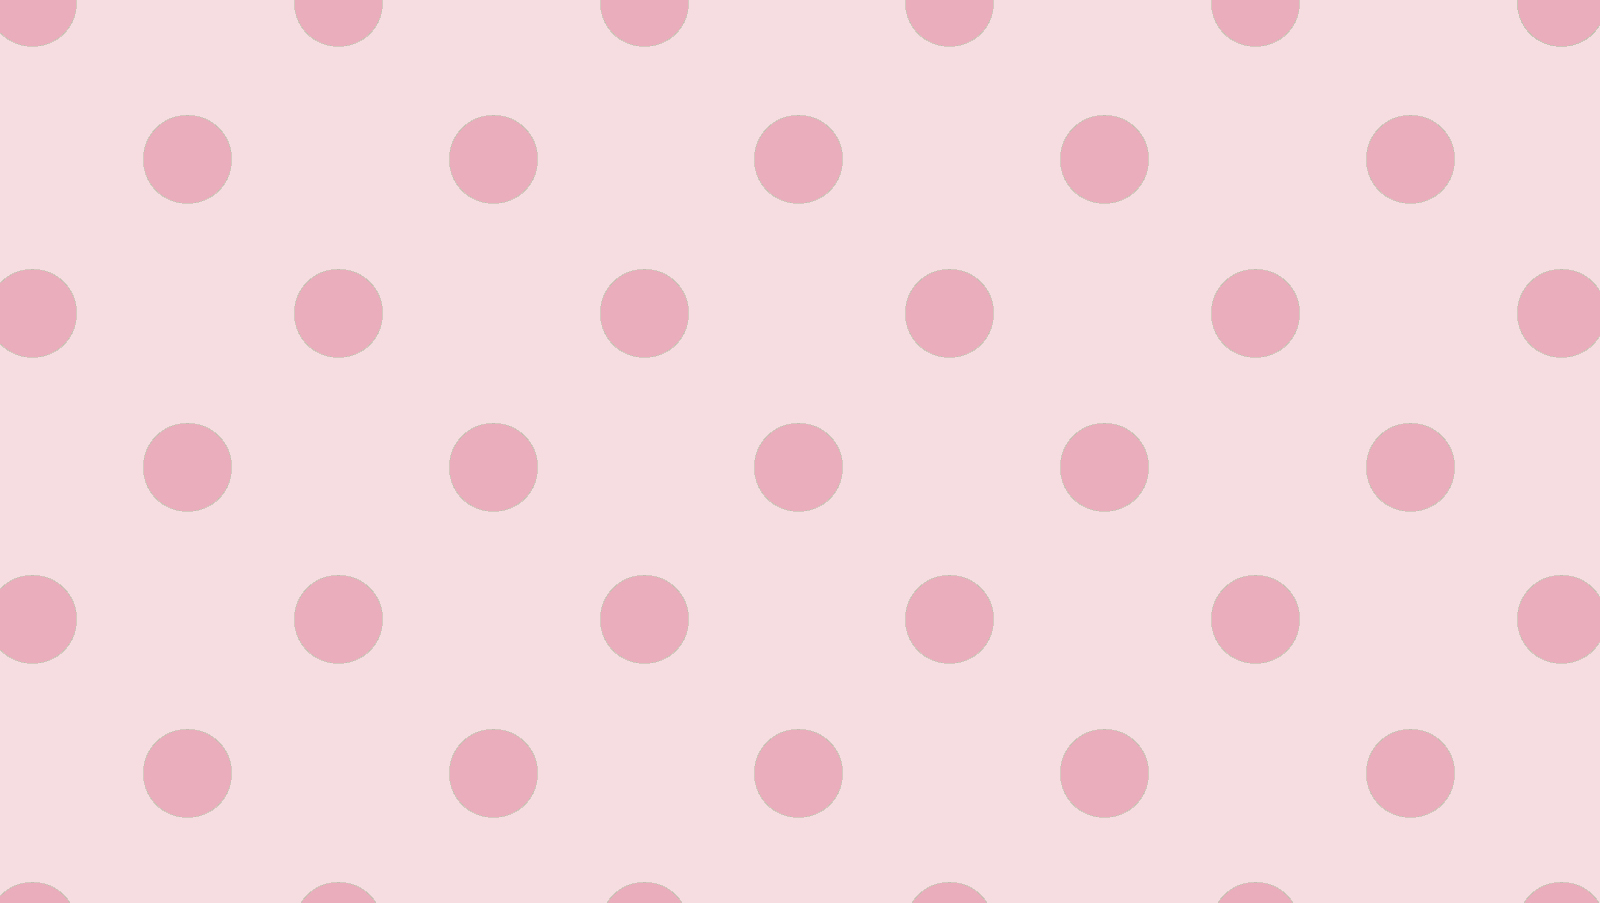 Pics photos pink polka dot s wallpaper - File Name 871823 Full Hd Pictures Polka Dot 205 9 Kb